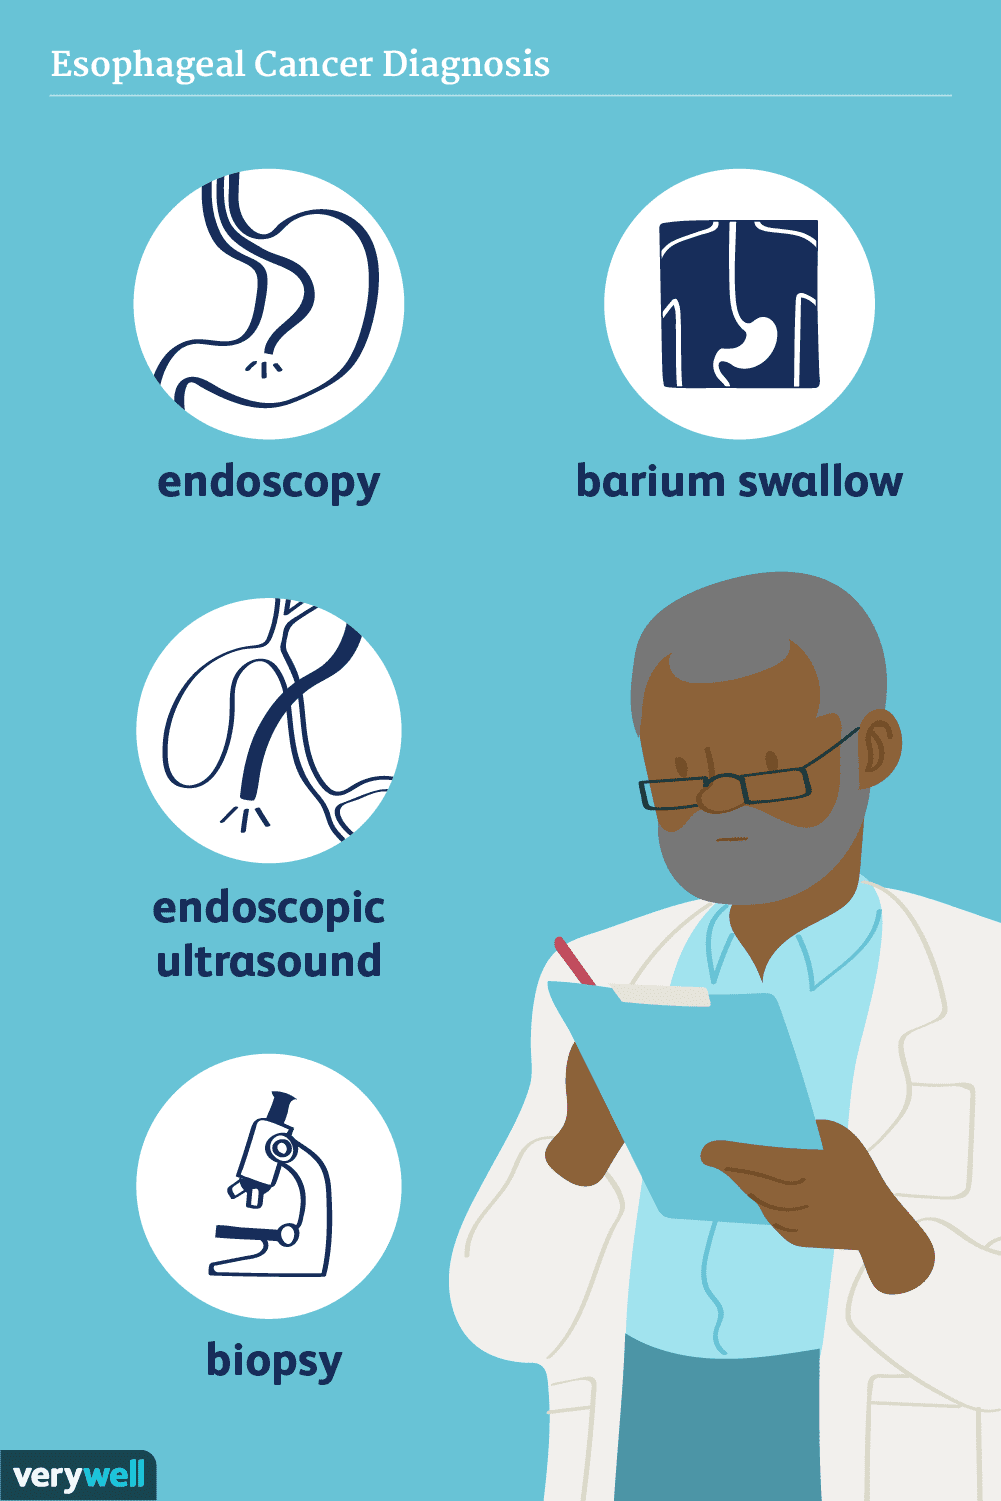 esophageal cancer diagnosis